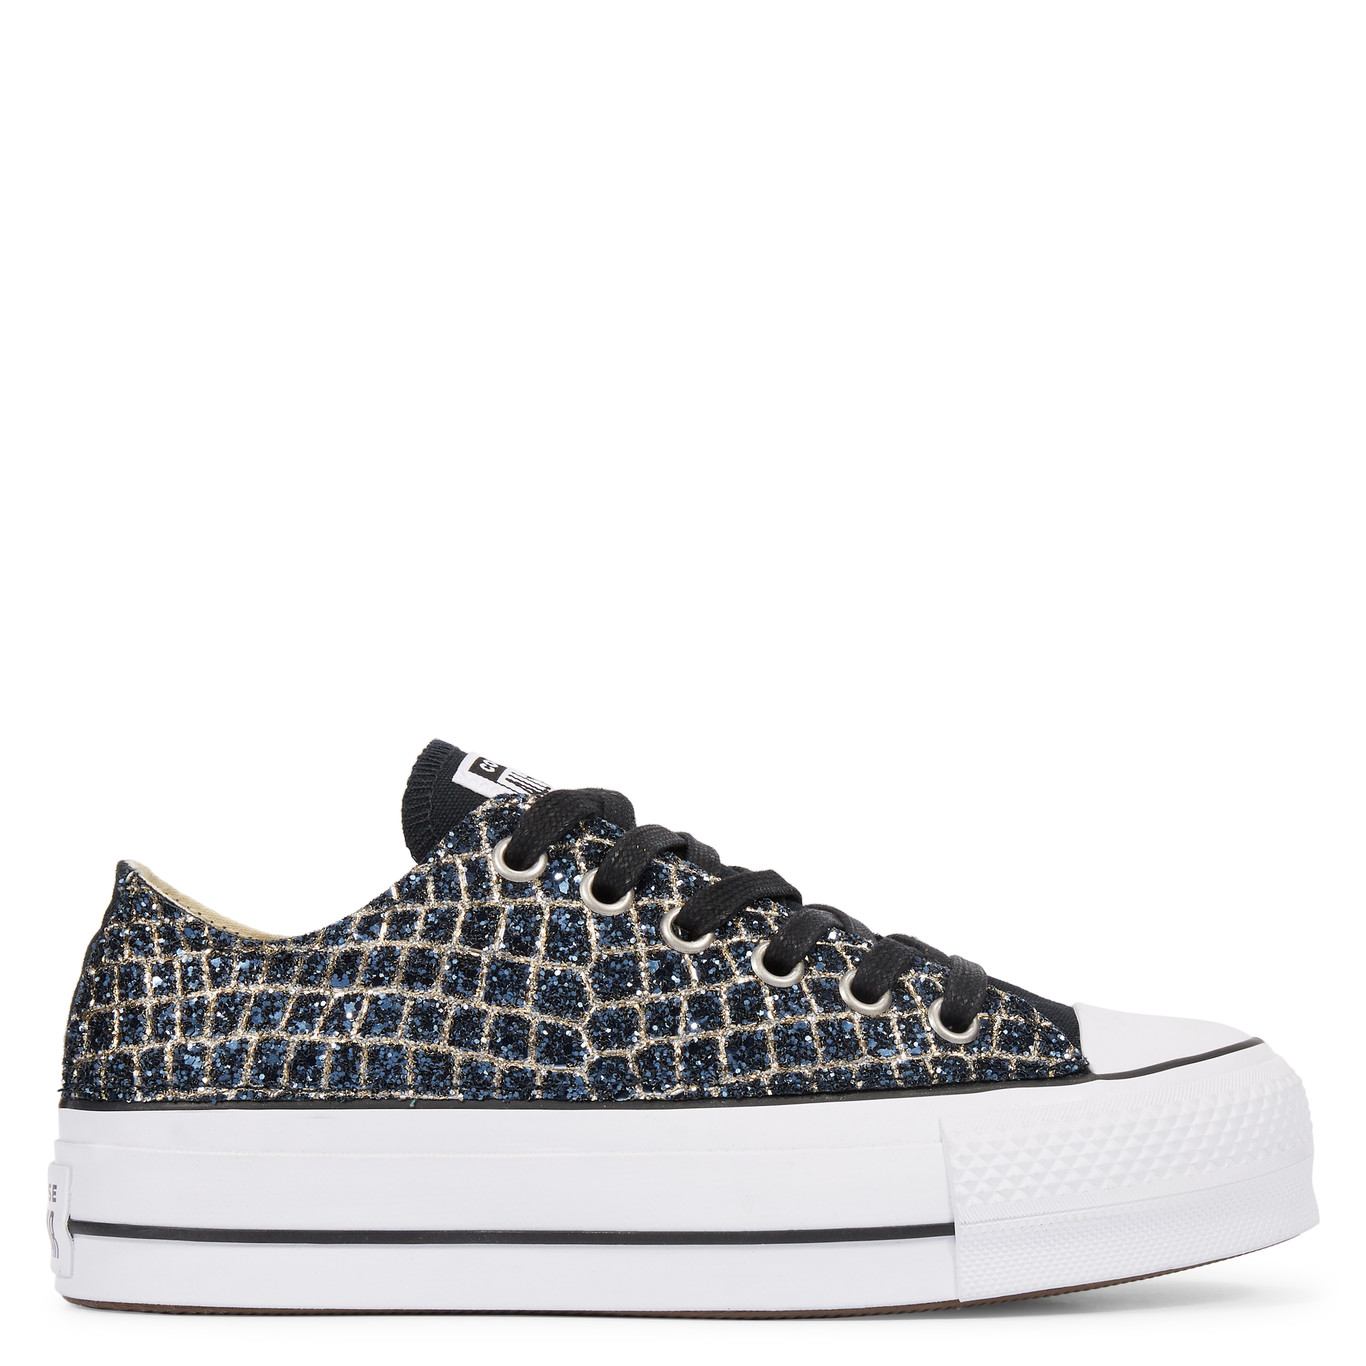 Chuck Taylor All Star Platform Print Low Top